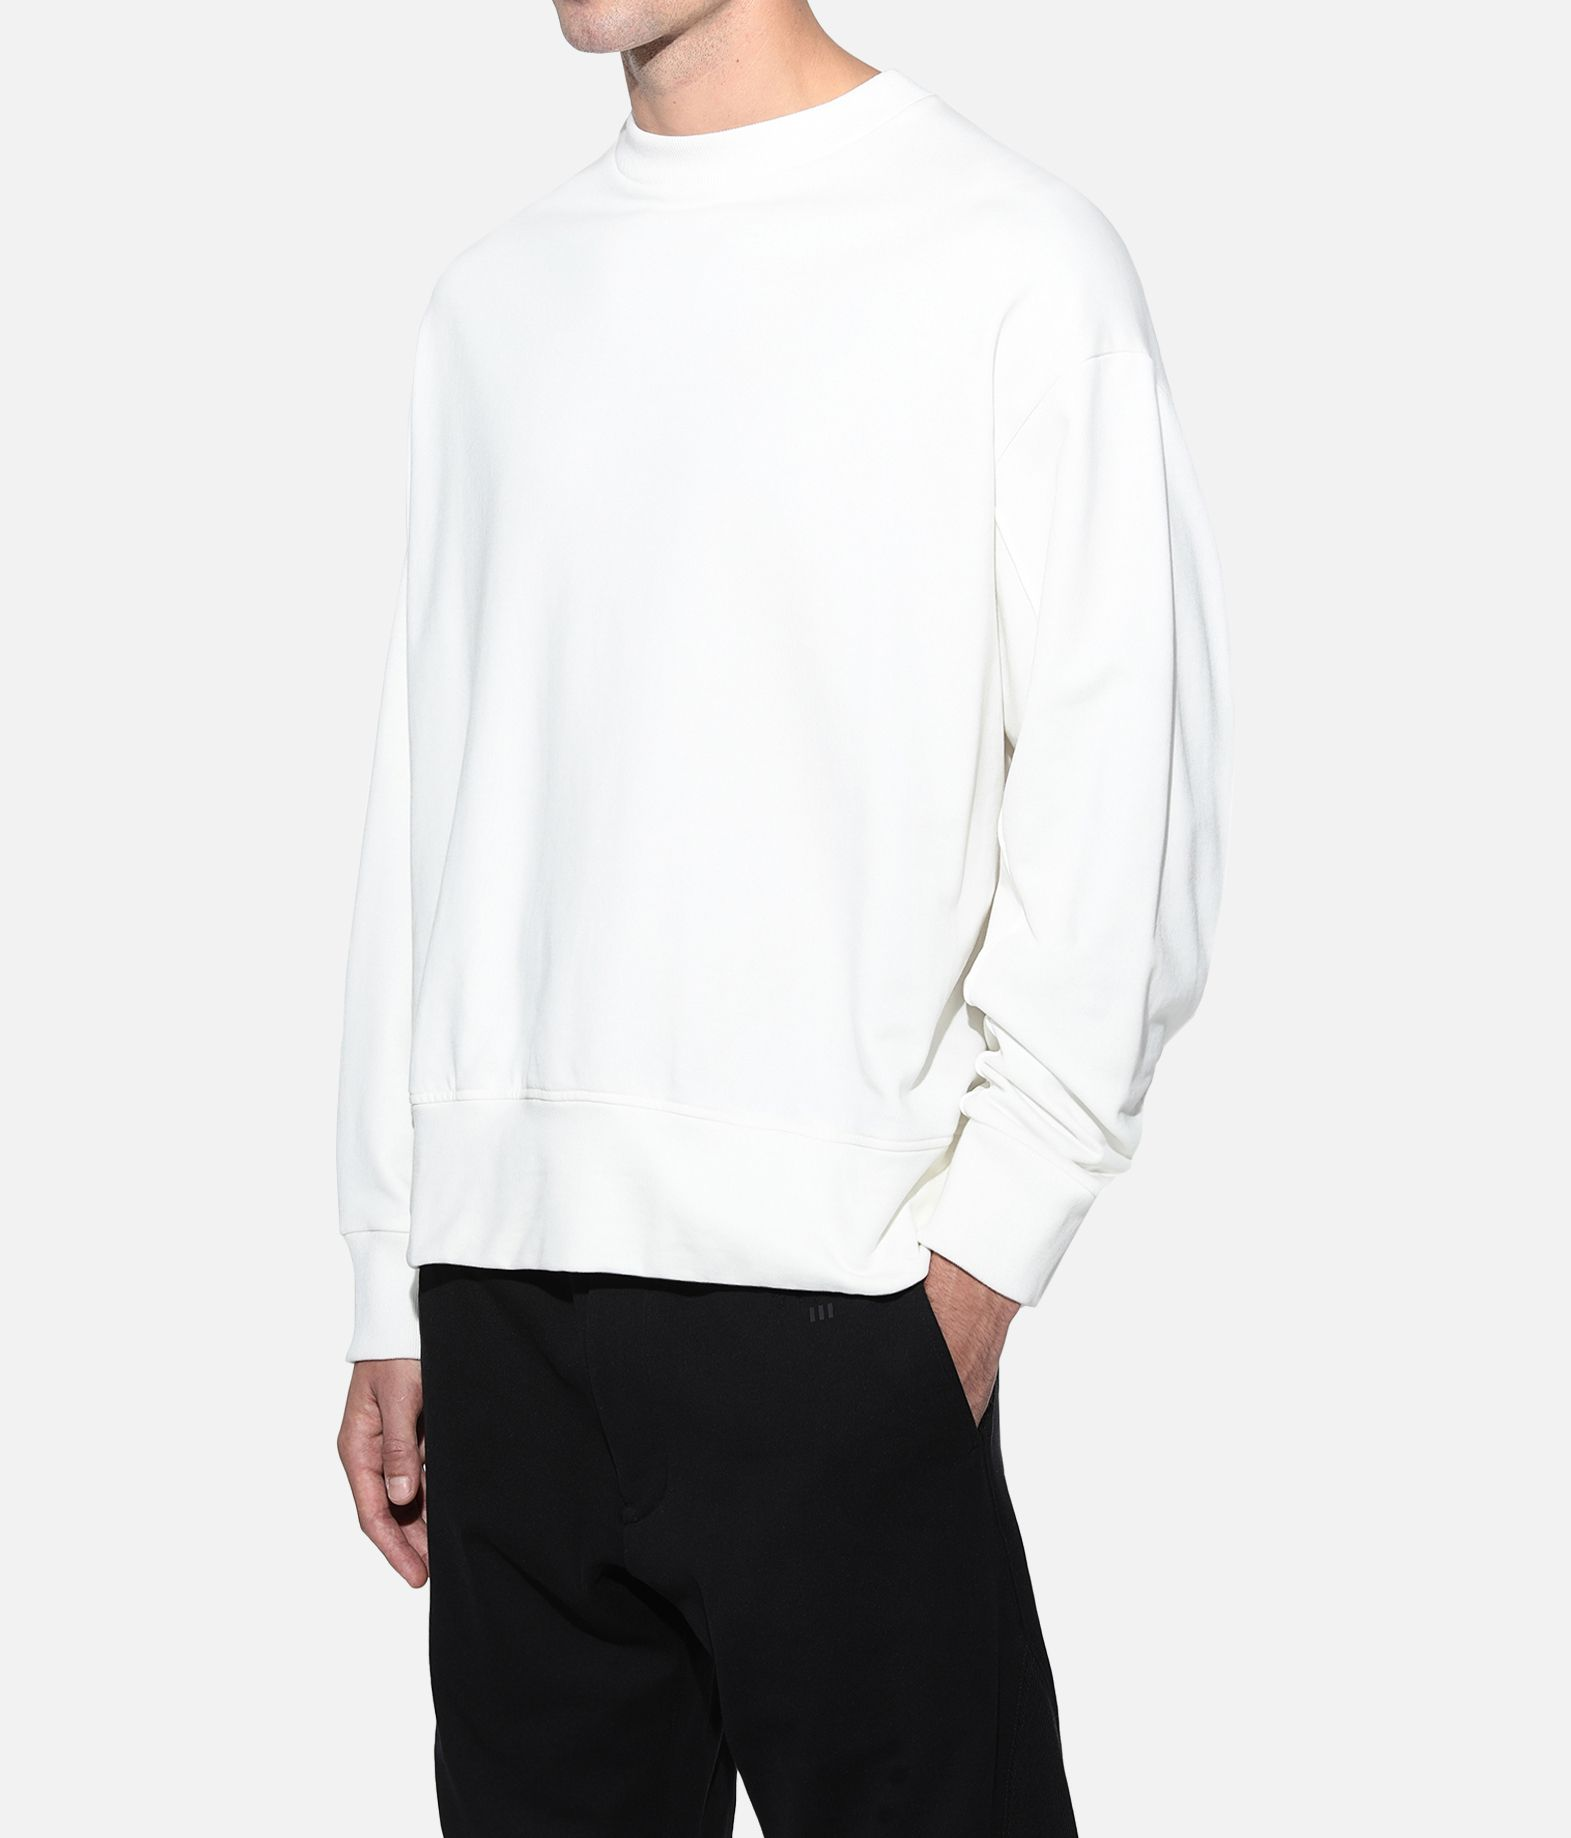 Y-3 Y-3 Signature Graphic Sweatshirt Sweatshirt Man e